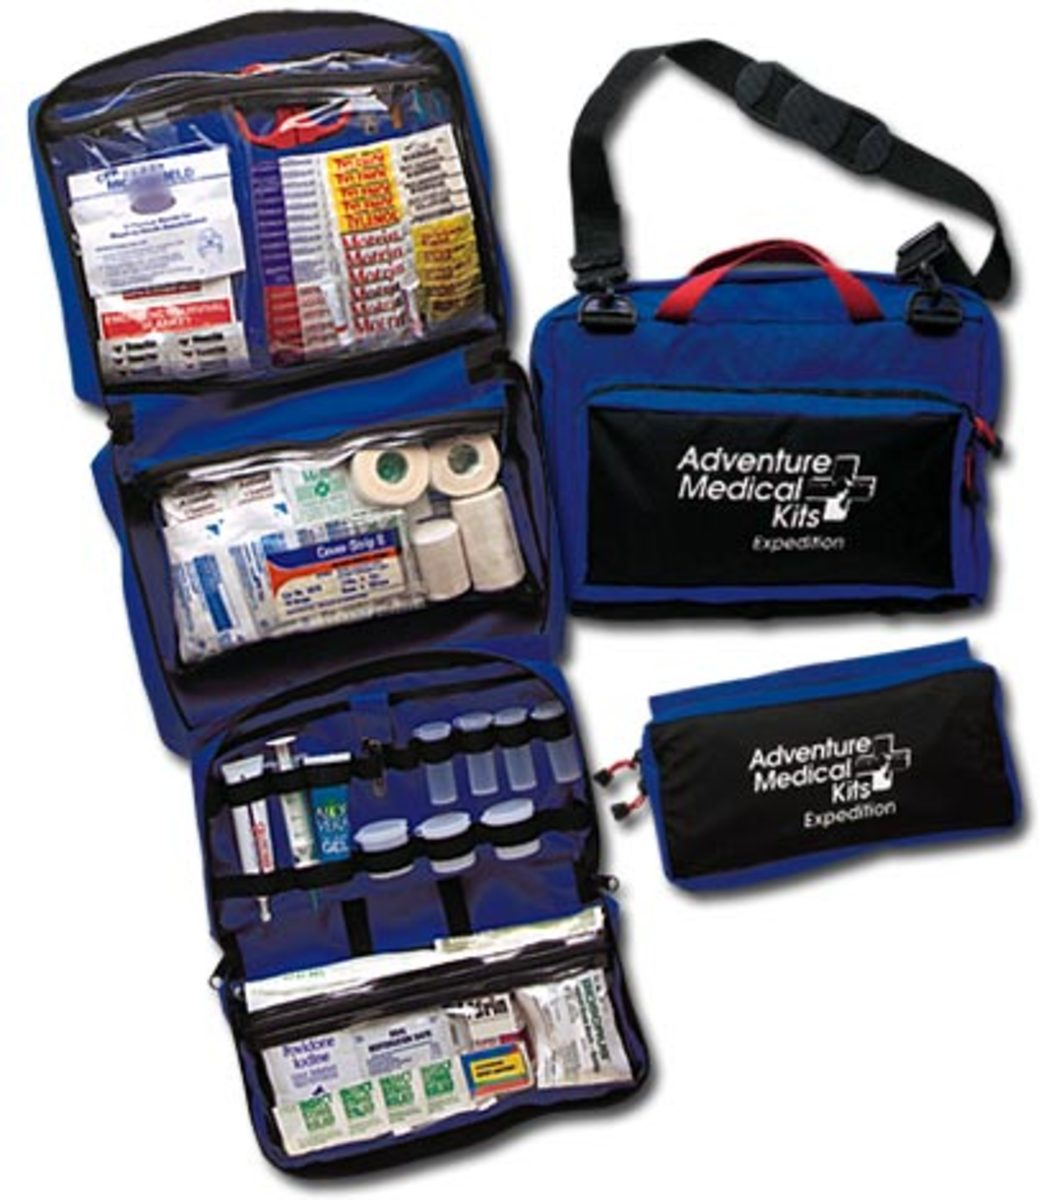 A first aid kit like the one above is essential in tsunamis